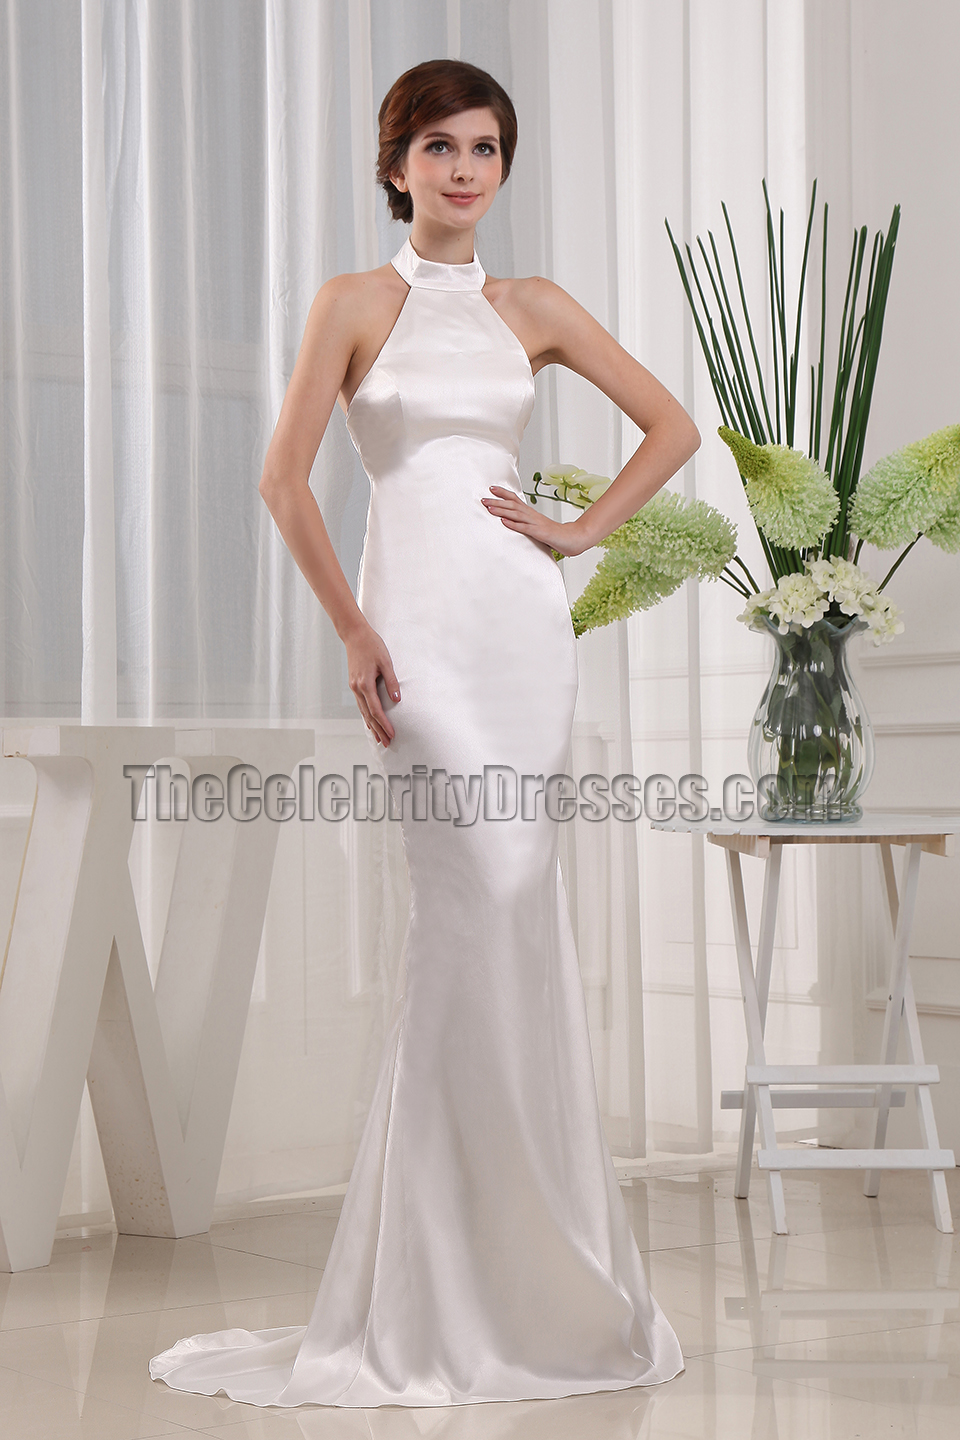 Simple mermaid halter wedding dress bridal gown thecelebritydresses junglespirit Choice Image